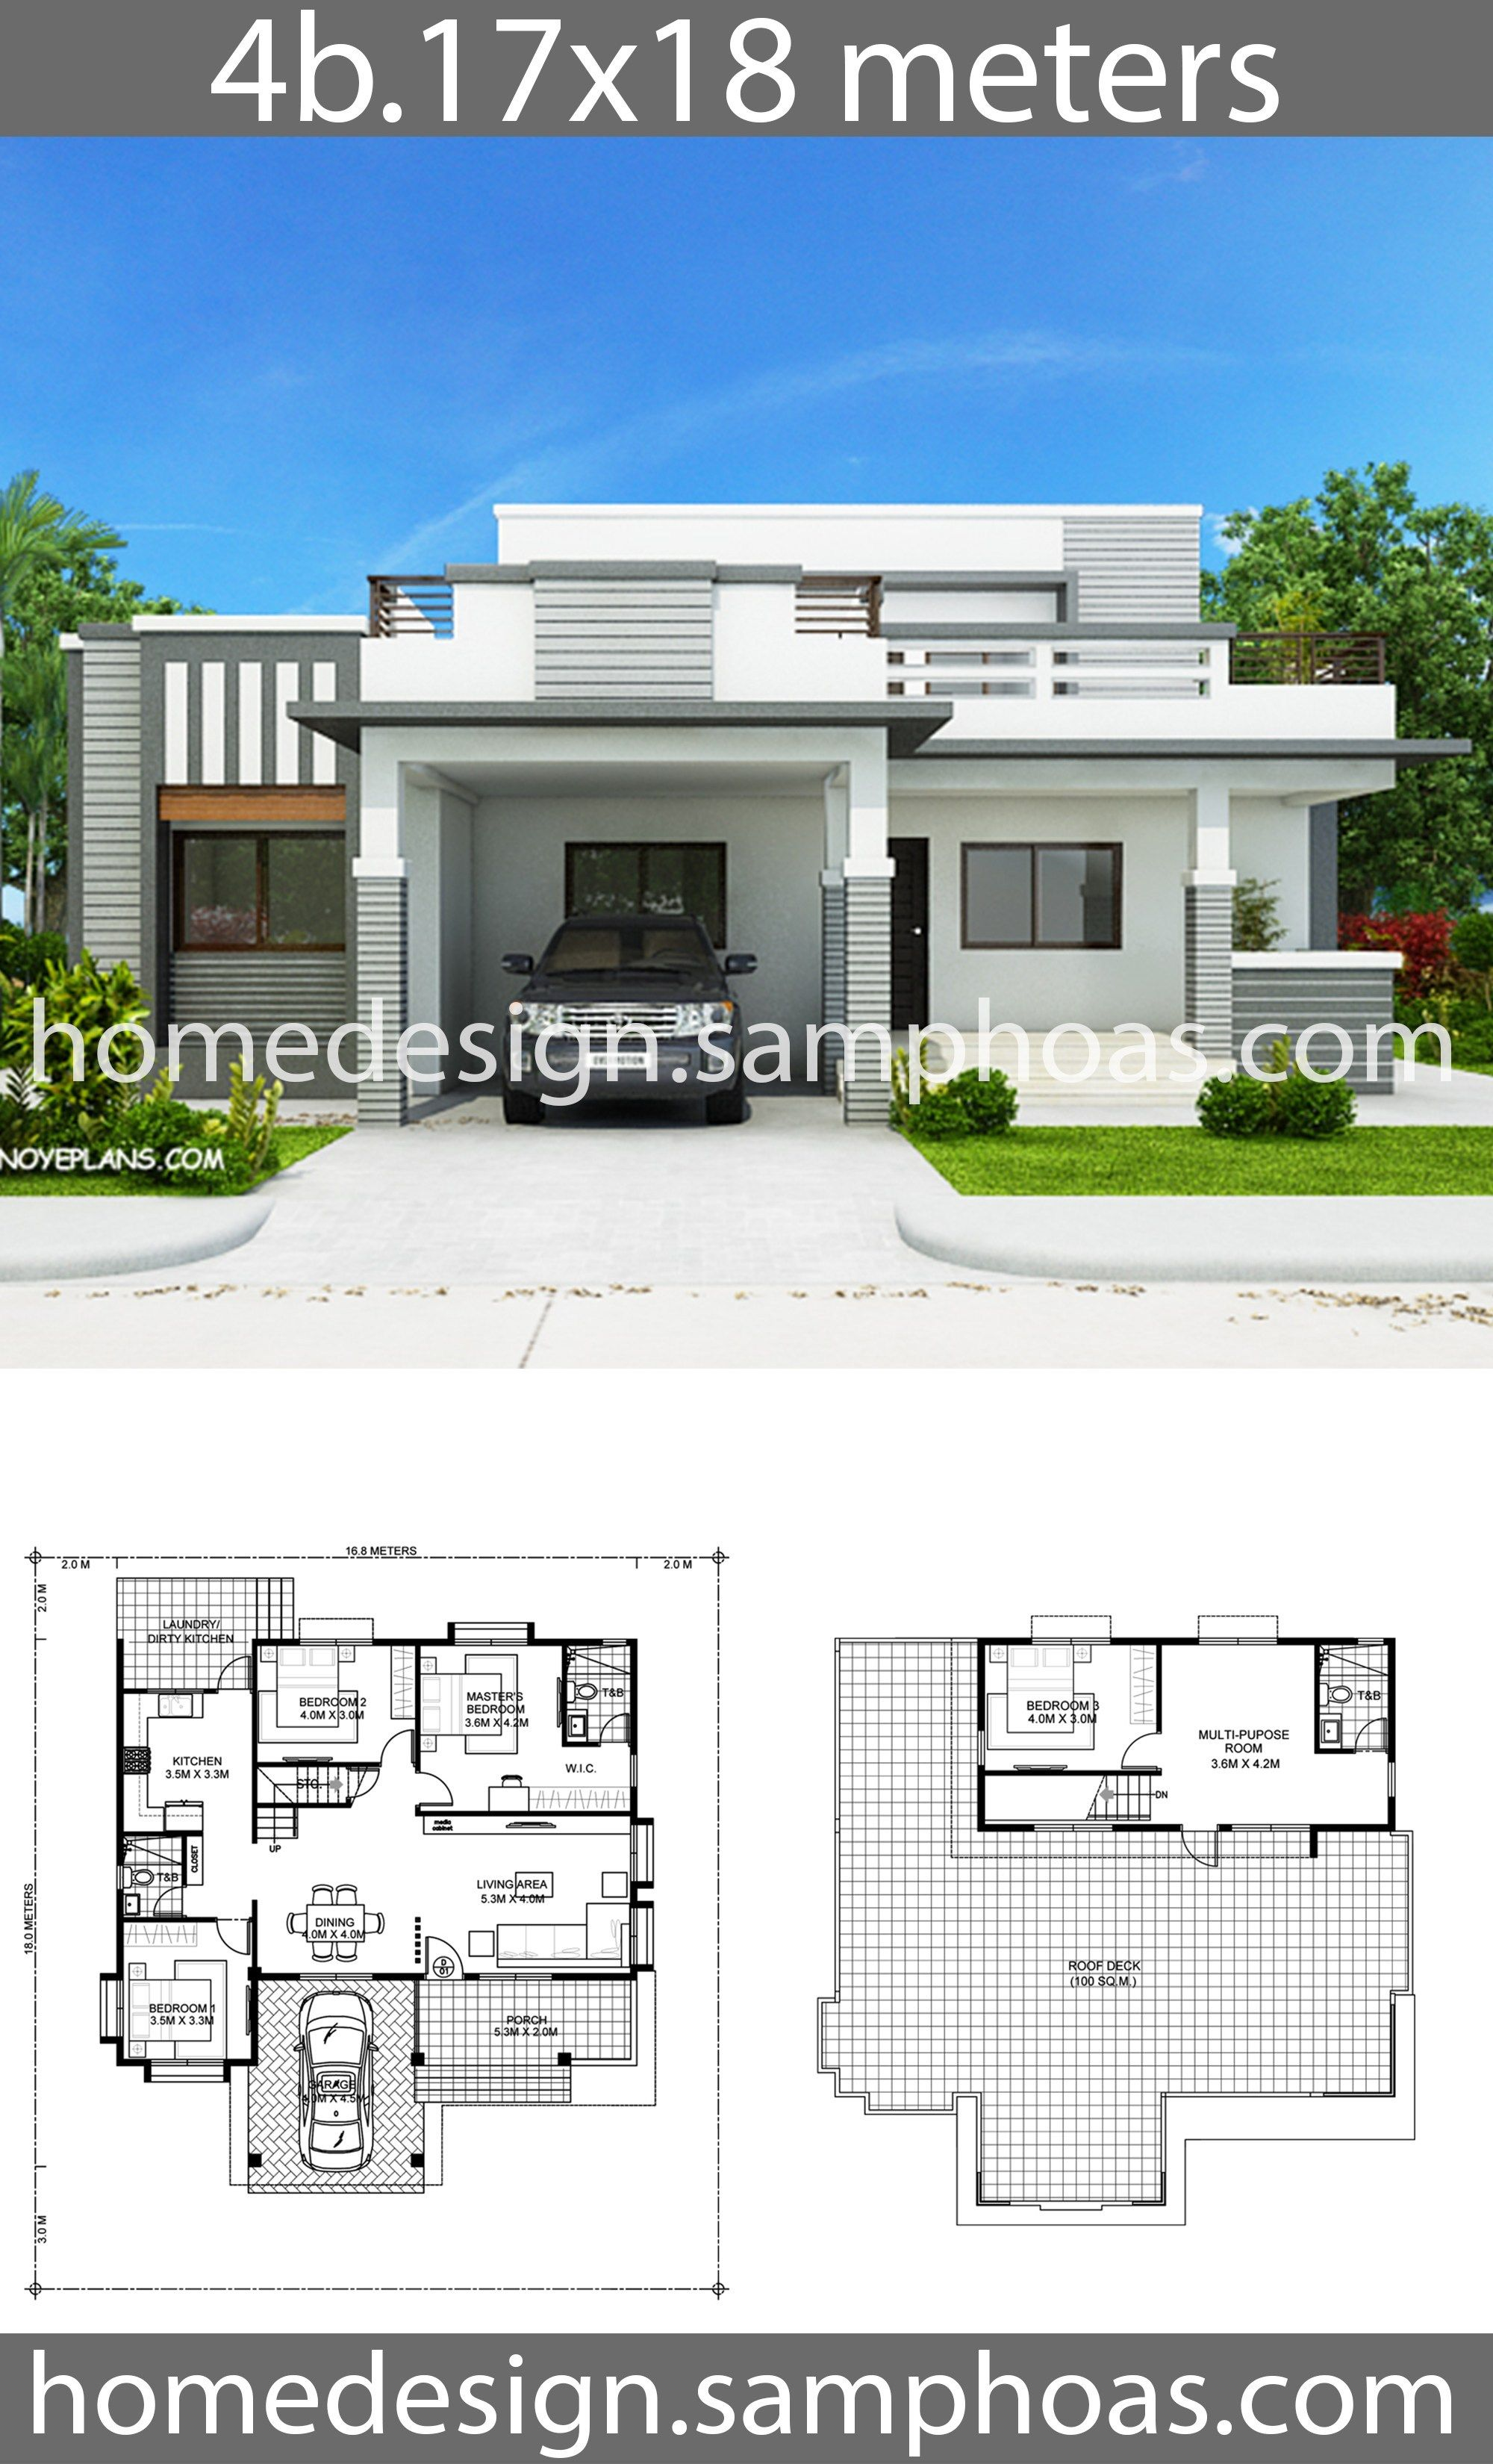 House Plans 17x18m With 4 Bedroom Style Modern Terrace Slaphouse Description Ground Level 3 Bedro Modern Bungalow House Modern House Plans House Plan Gallery